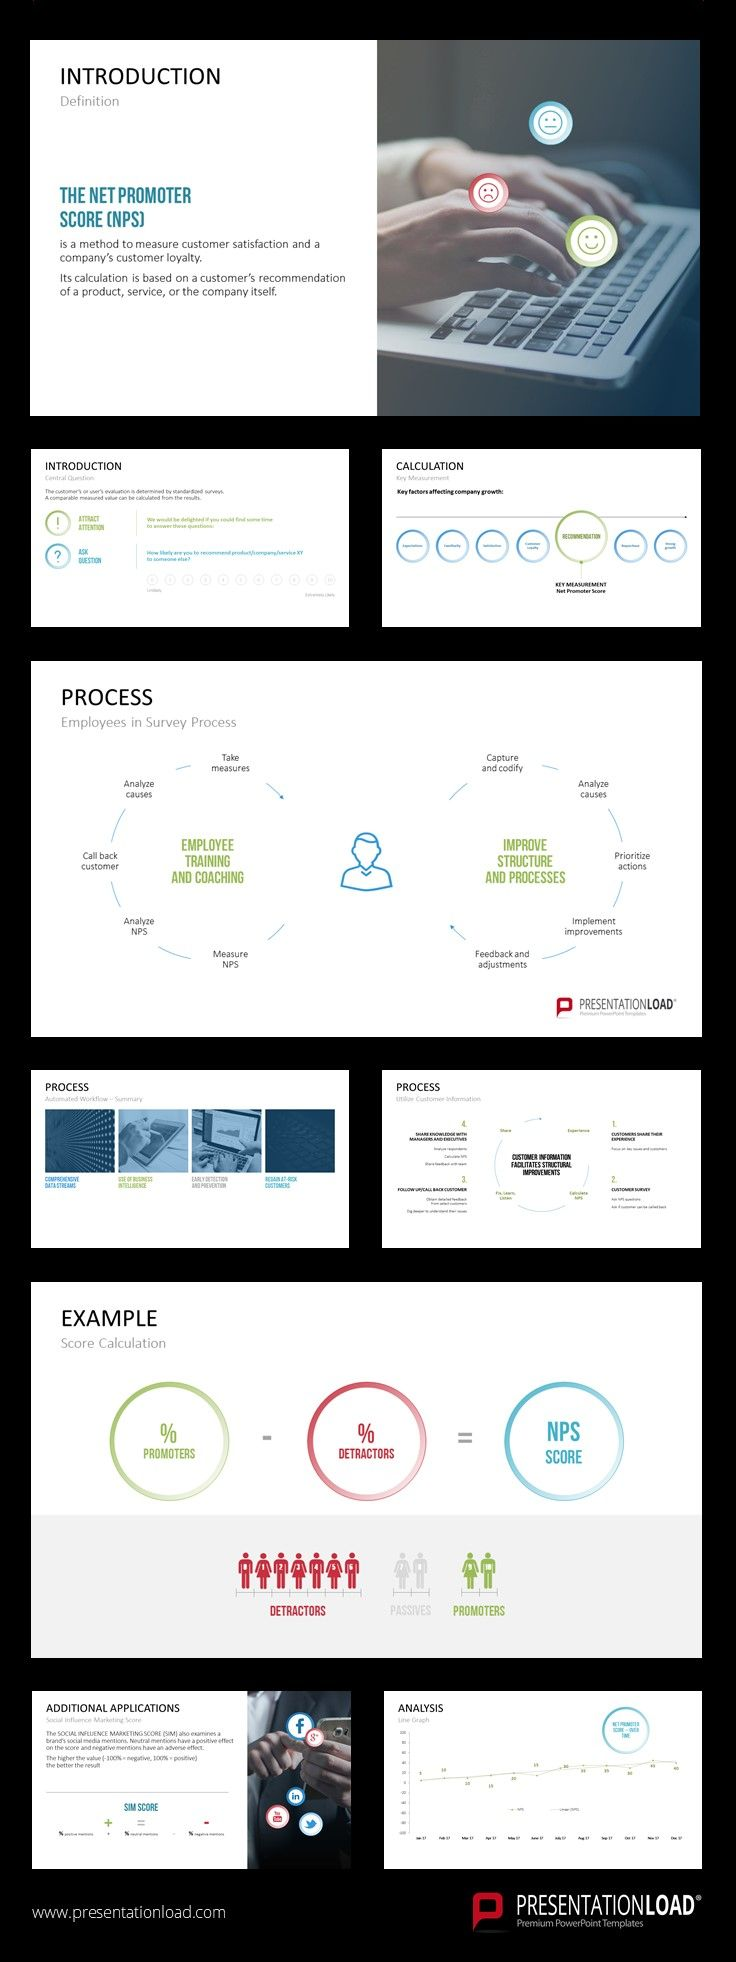 Take Advantage Of Our Slides With A Wide Range Of Information To Calculate Your Company S Net P Experience Map Customer Experience Mapping Powerpoint Templates